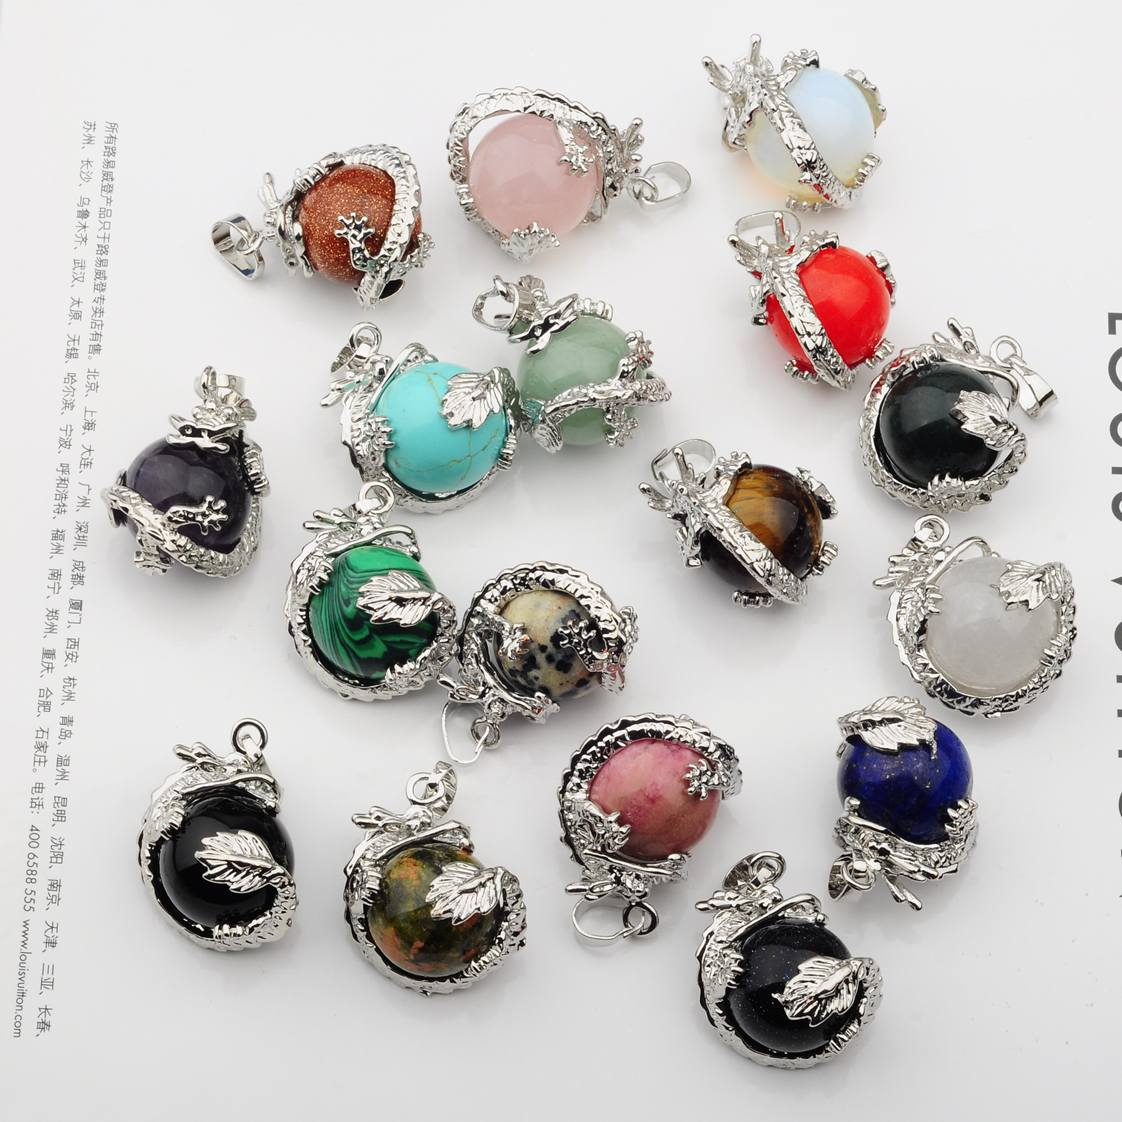 Gemstone information a list of precious and semi precious gemstones - Hot Sales Natural Semi Precious Stone Round Crystal Balls Wrapped Silver Dragon Jewelry Necklace Pendant 15mm